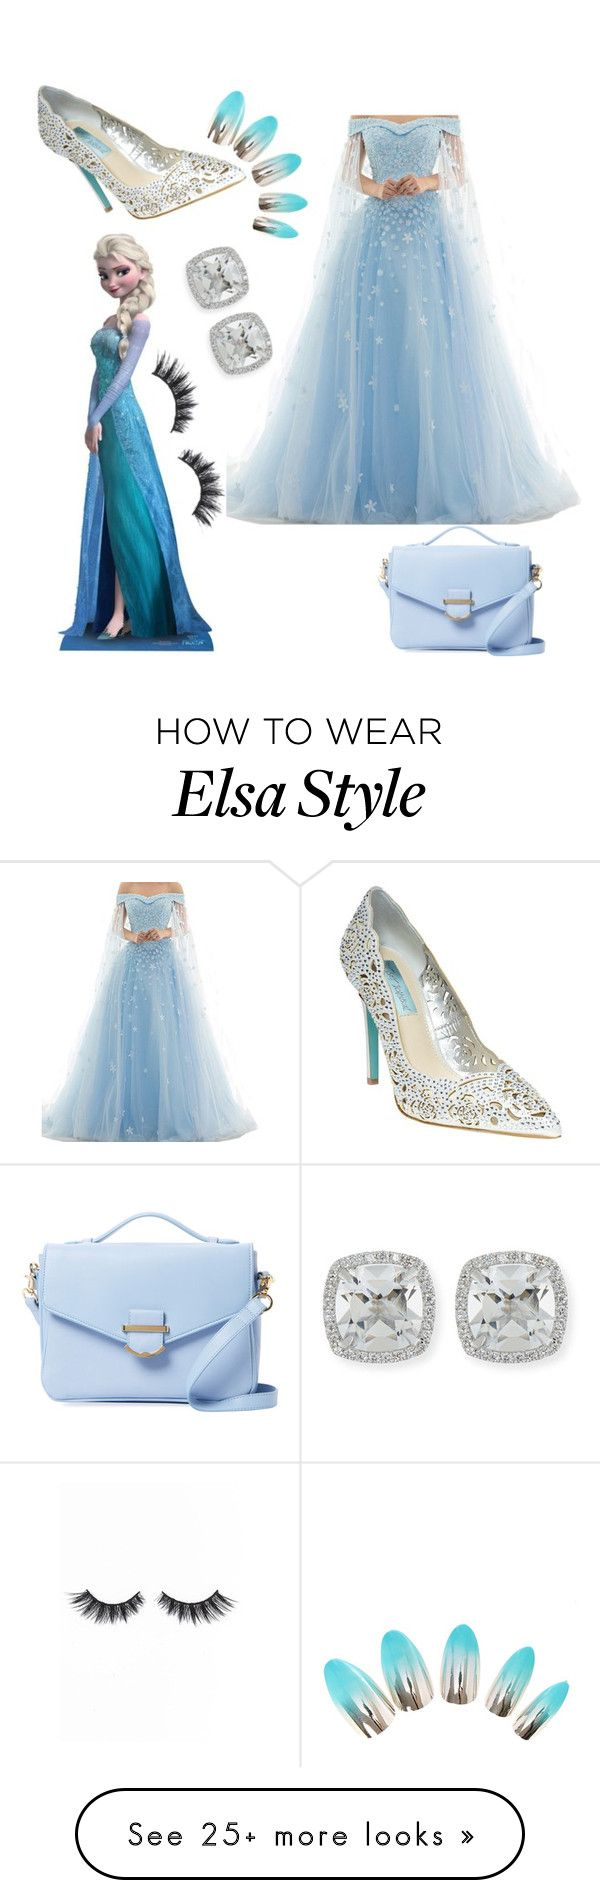 """Elsa has her"" by queenofquestions on Polyvore featuring Cynthia Rowley, Disney, Betsey Johnson, Frederic Sage and Violet Voss"